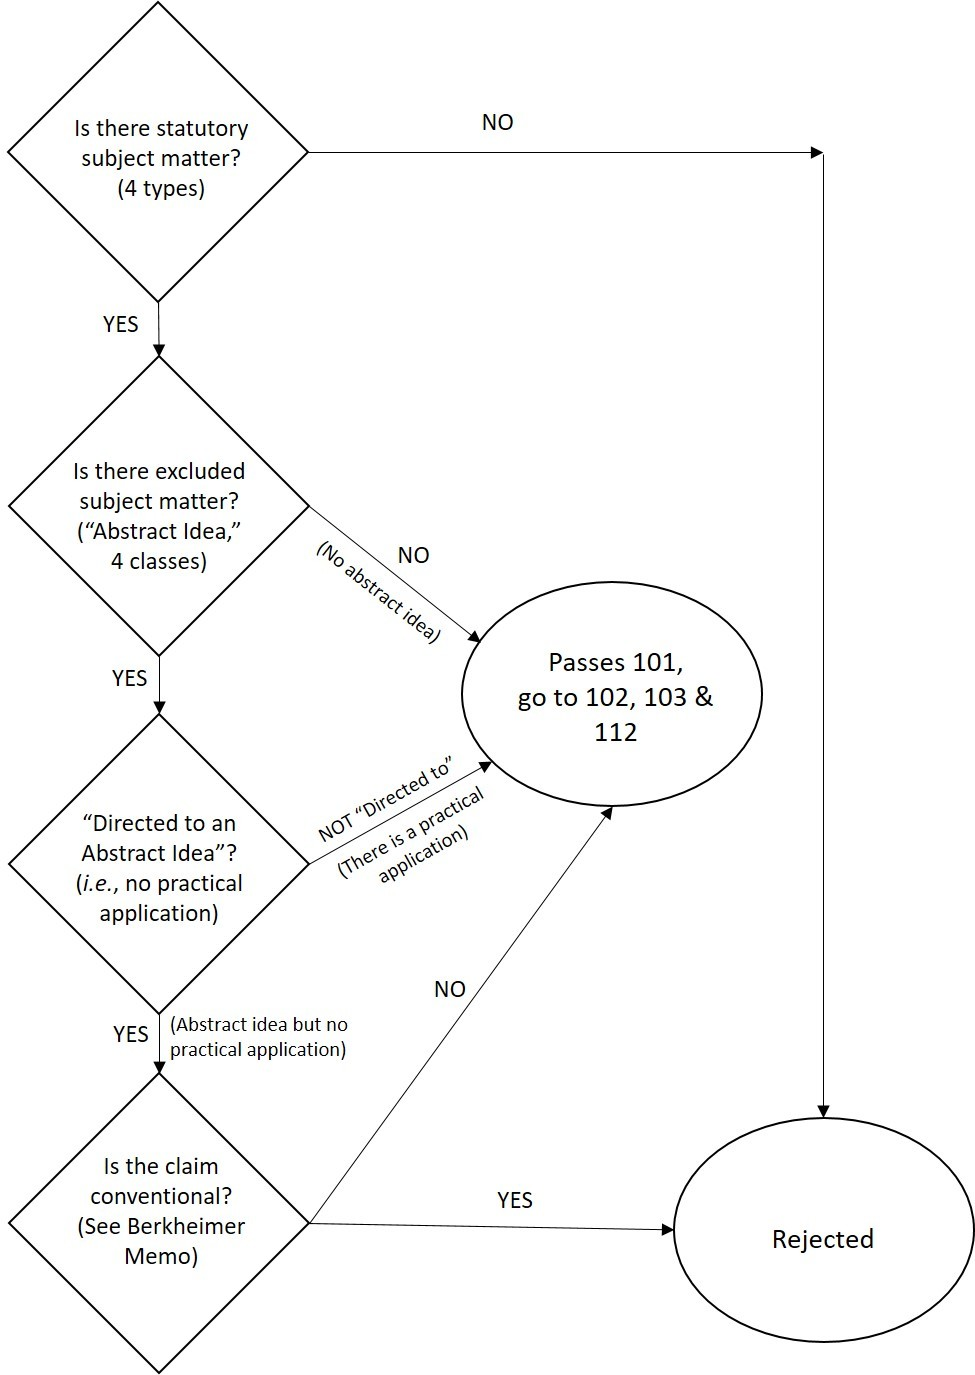 Illustrating the New USPTO Guidance with a Flowchart